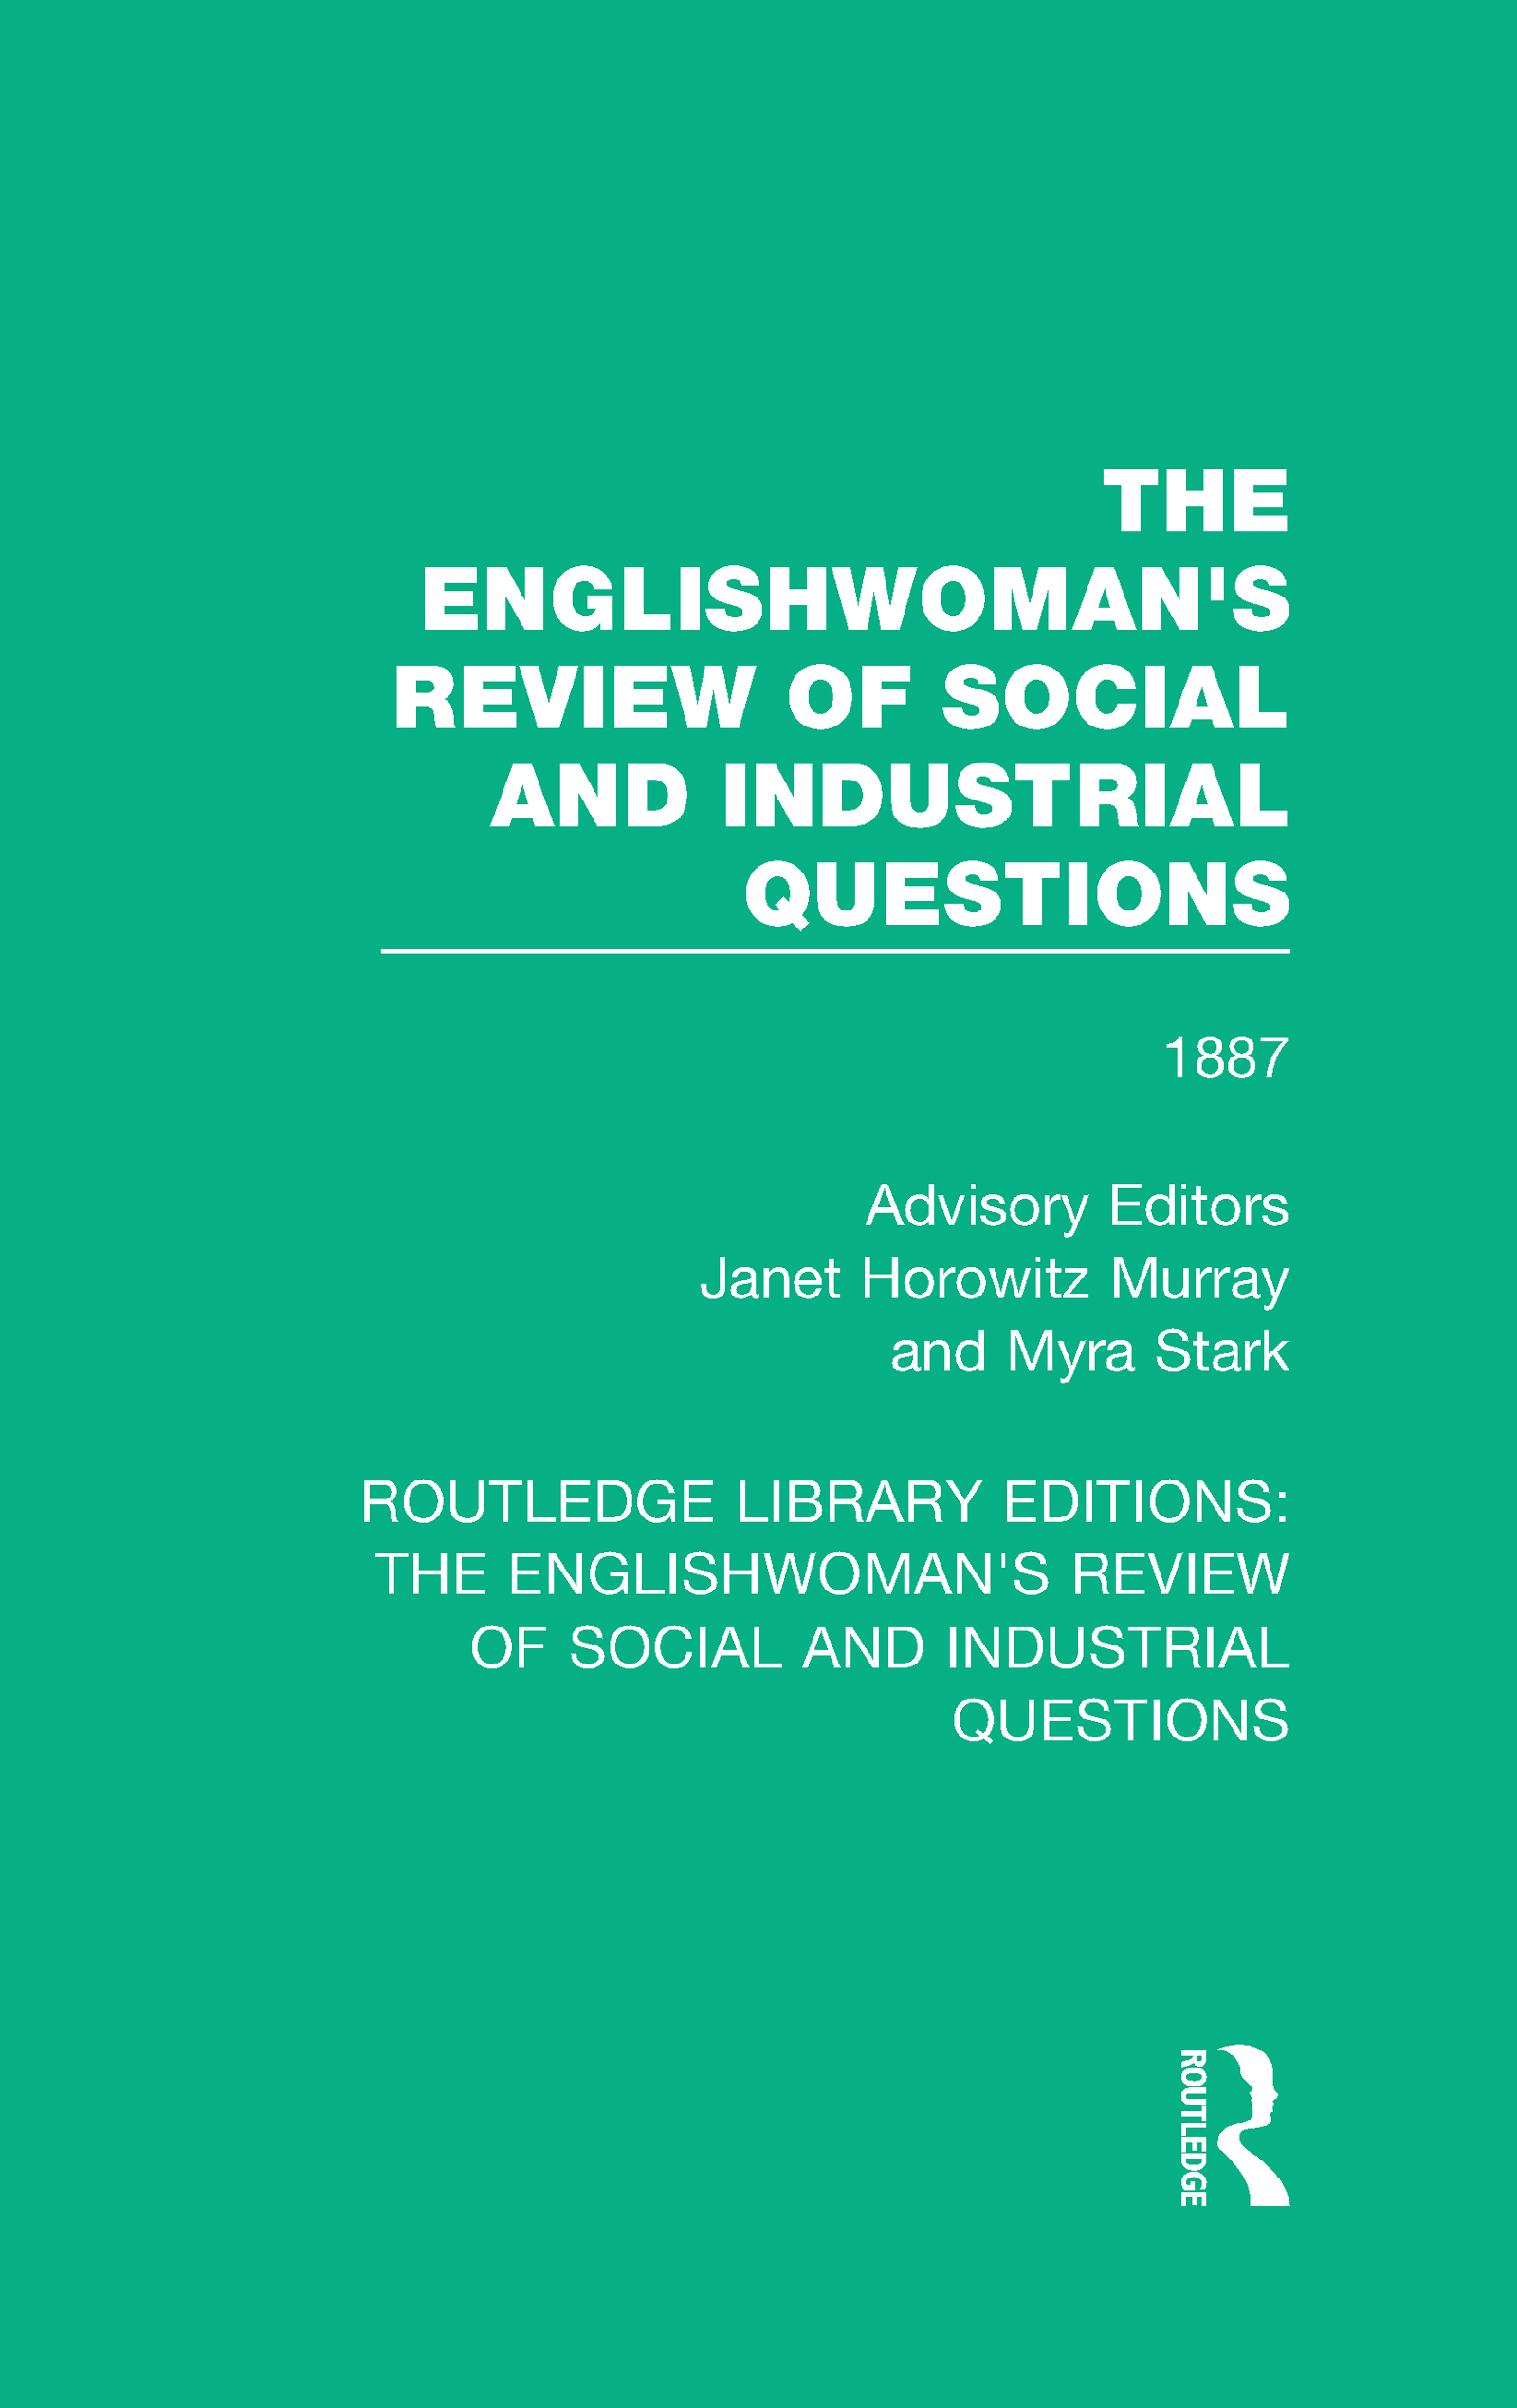 The Englishwoman's Review of Social and Industrial Questions: 1887 book cover